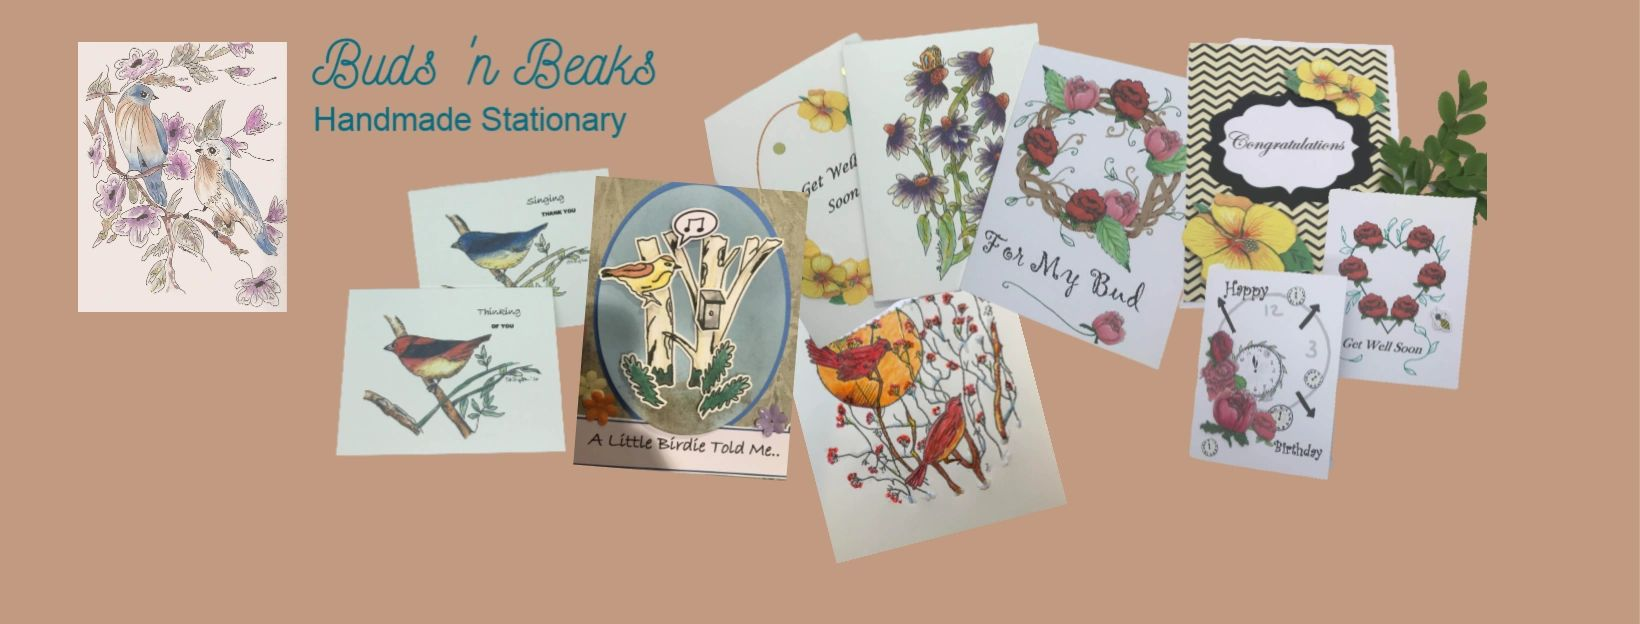 Buds 'n Beaks Handmade Stationary | Greeting Cards | Note Cards | Hand Drawn Ink and Watercolor